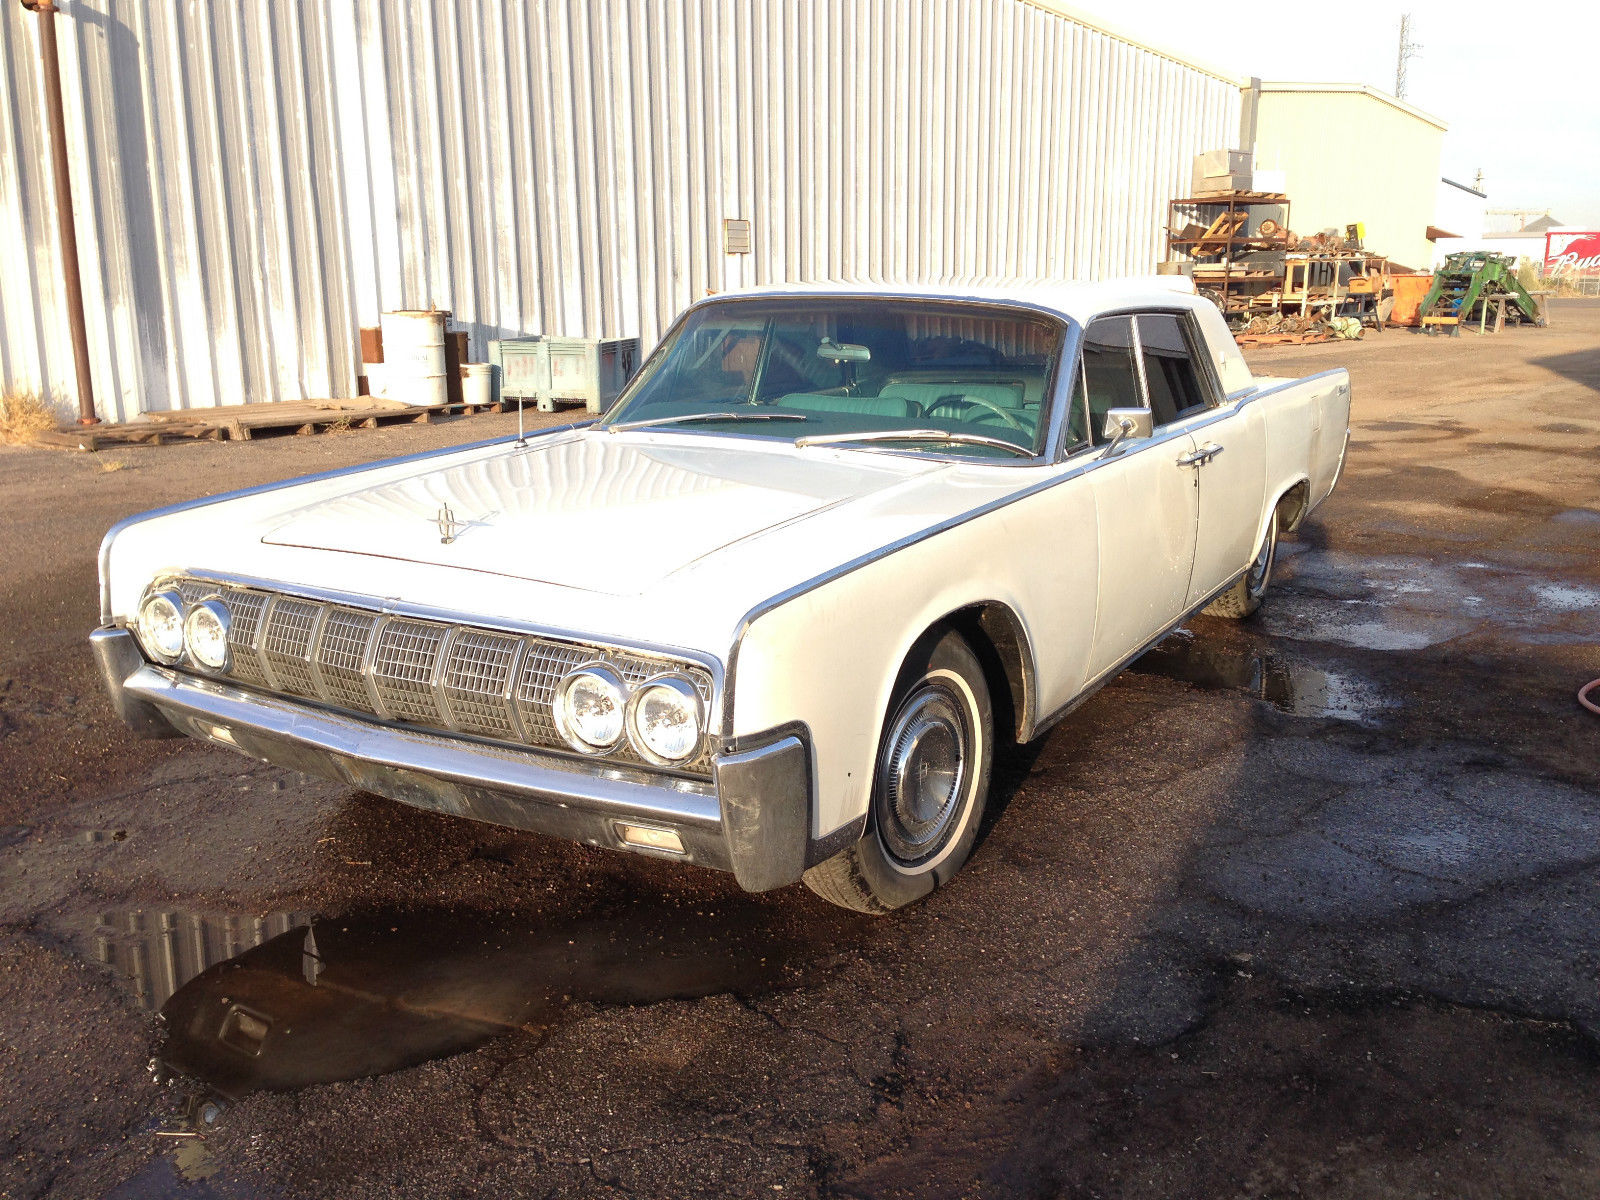 Square Shouldered 1964 Lincoln Continental Hardtop Sedan